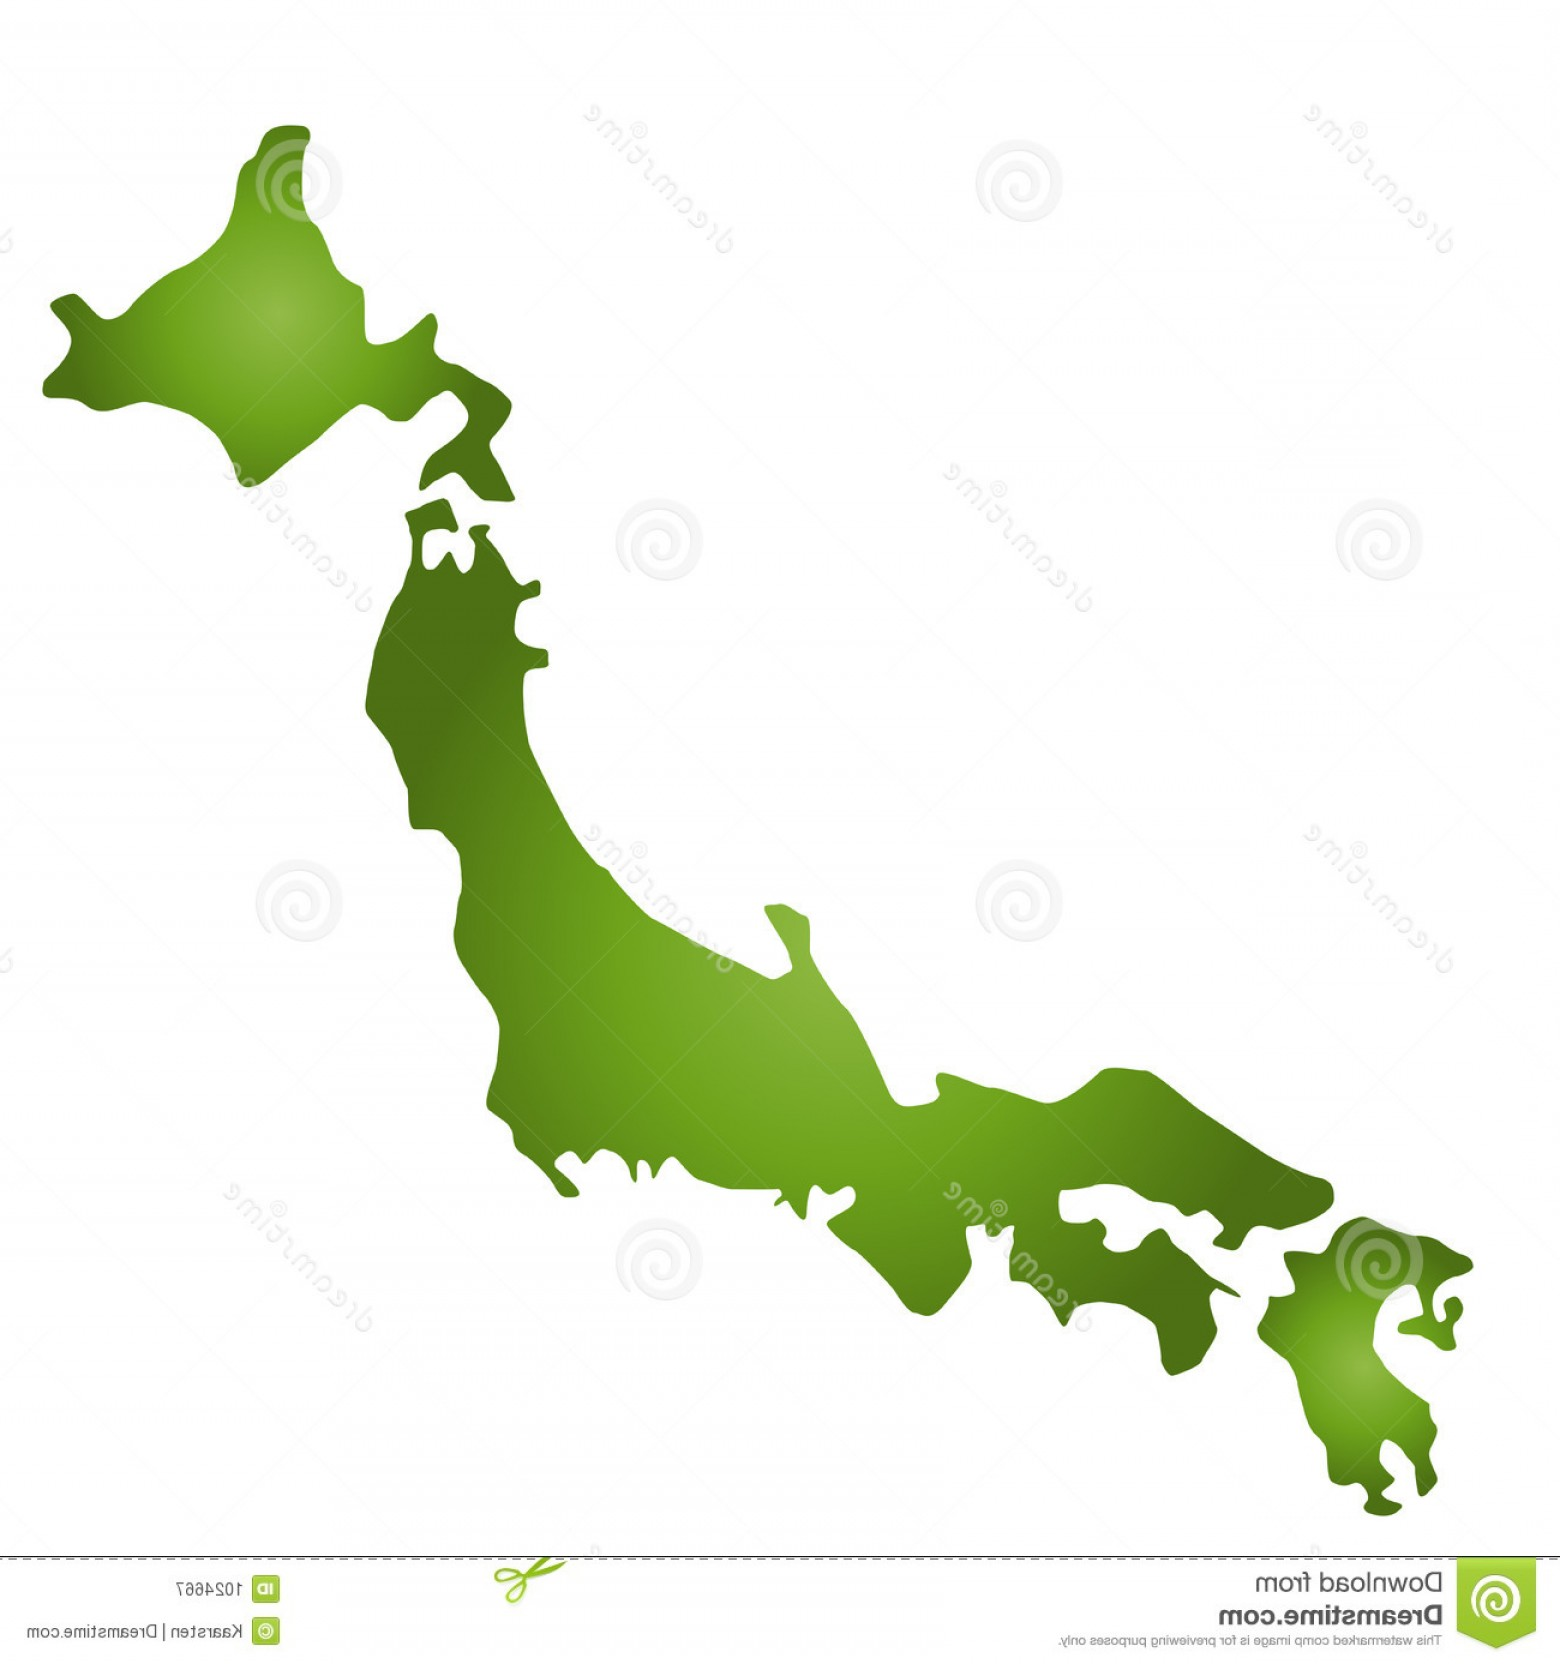 Japan Map Vector: Royalty Free Stock Photography Map Japan Image